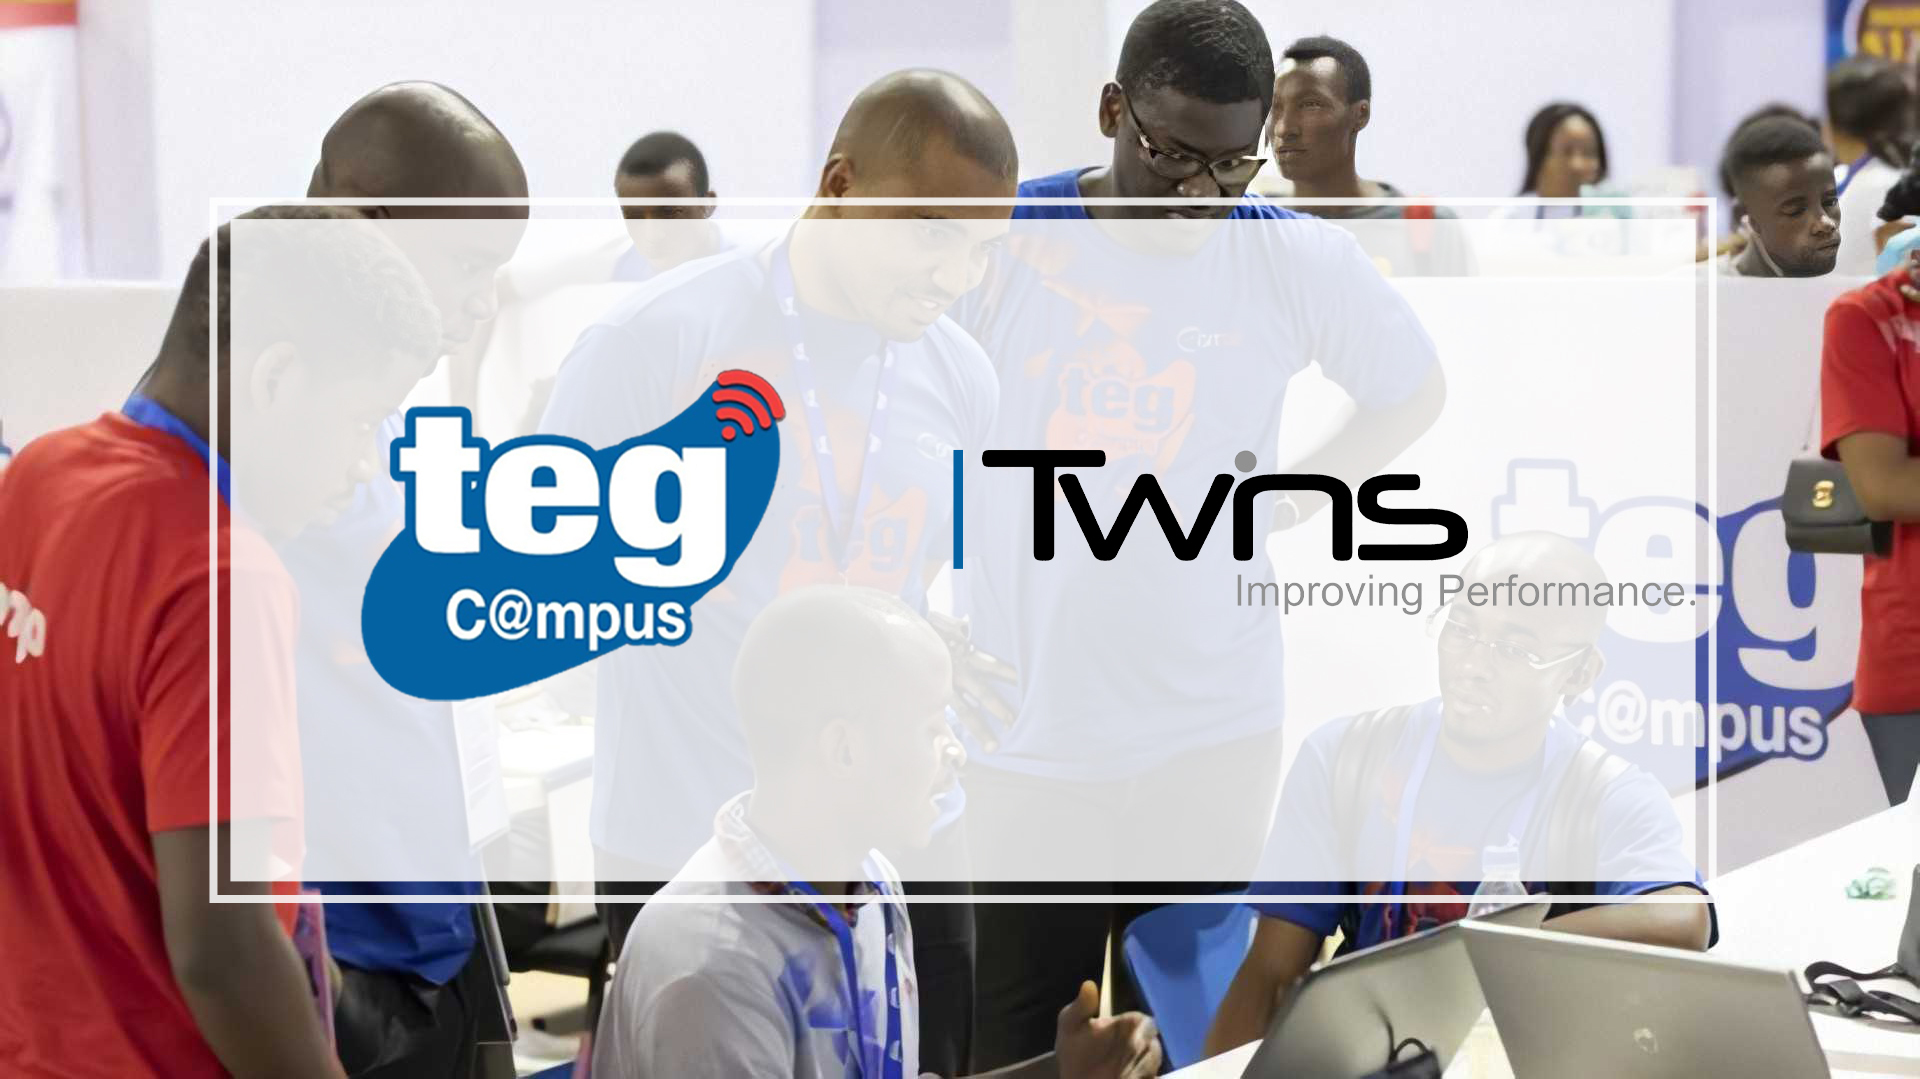 Twins Groupe Teg Campus